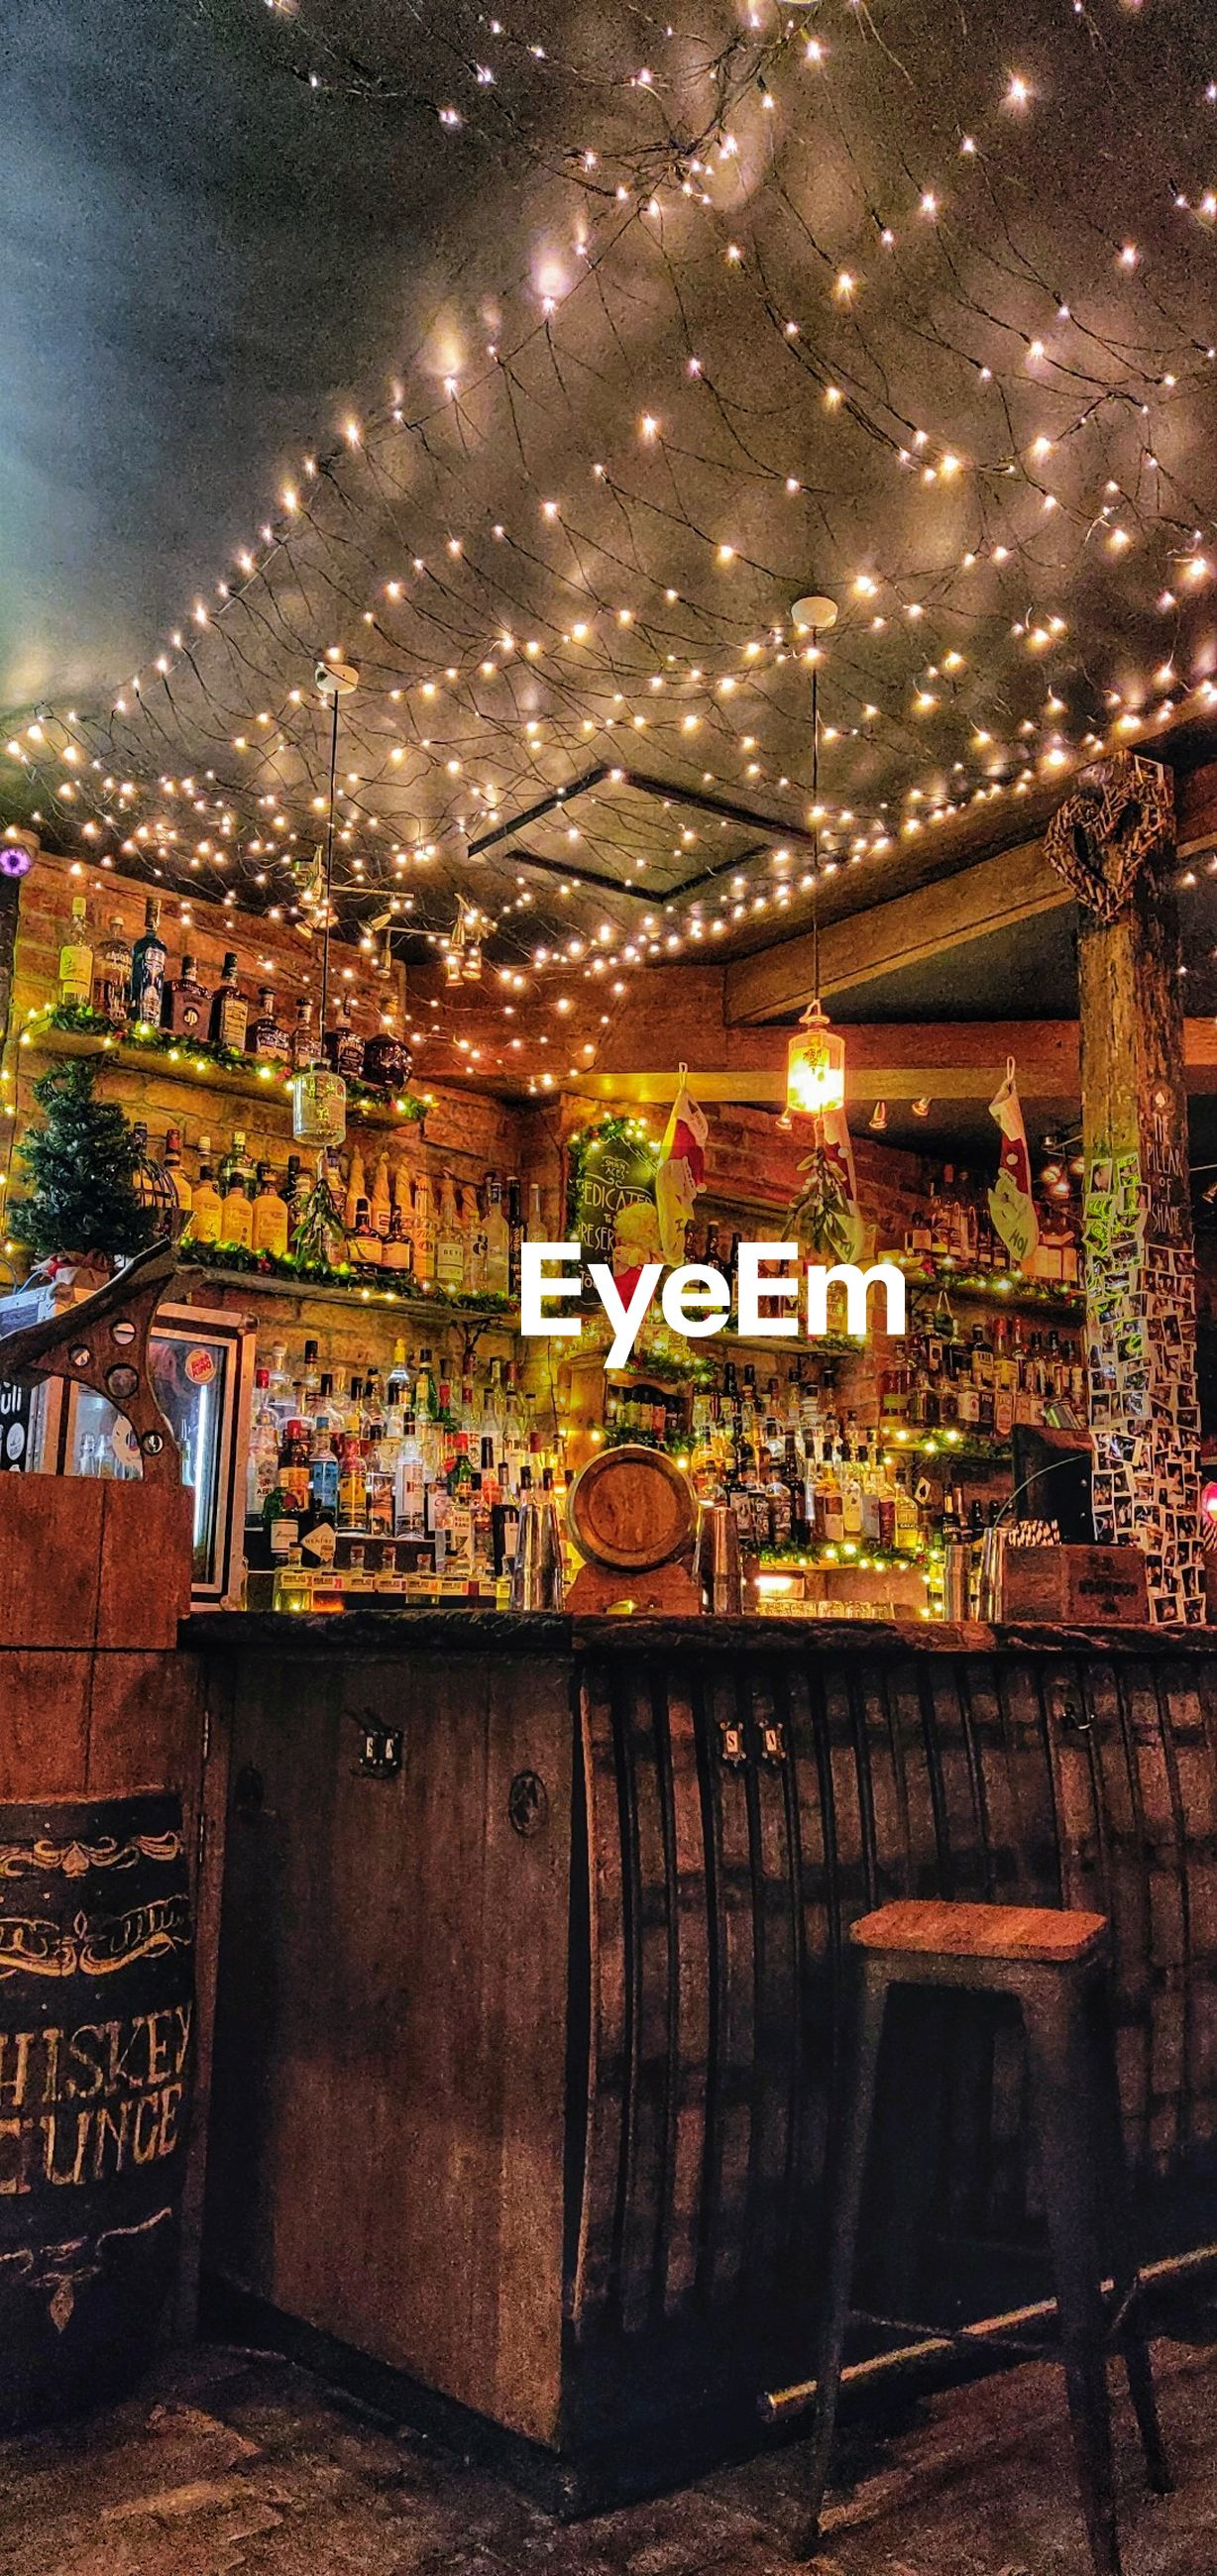 illuminated, food and drink, business, architecture, night, lighting equipment, retail, choice, decoration, built structure, container, variation, no people, large group of objects, food, abundance, store, market, collection, indoors, bar counter